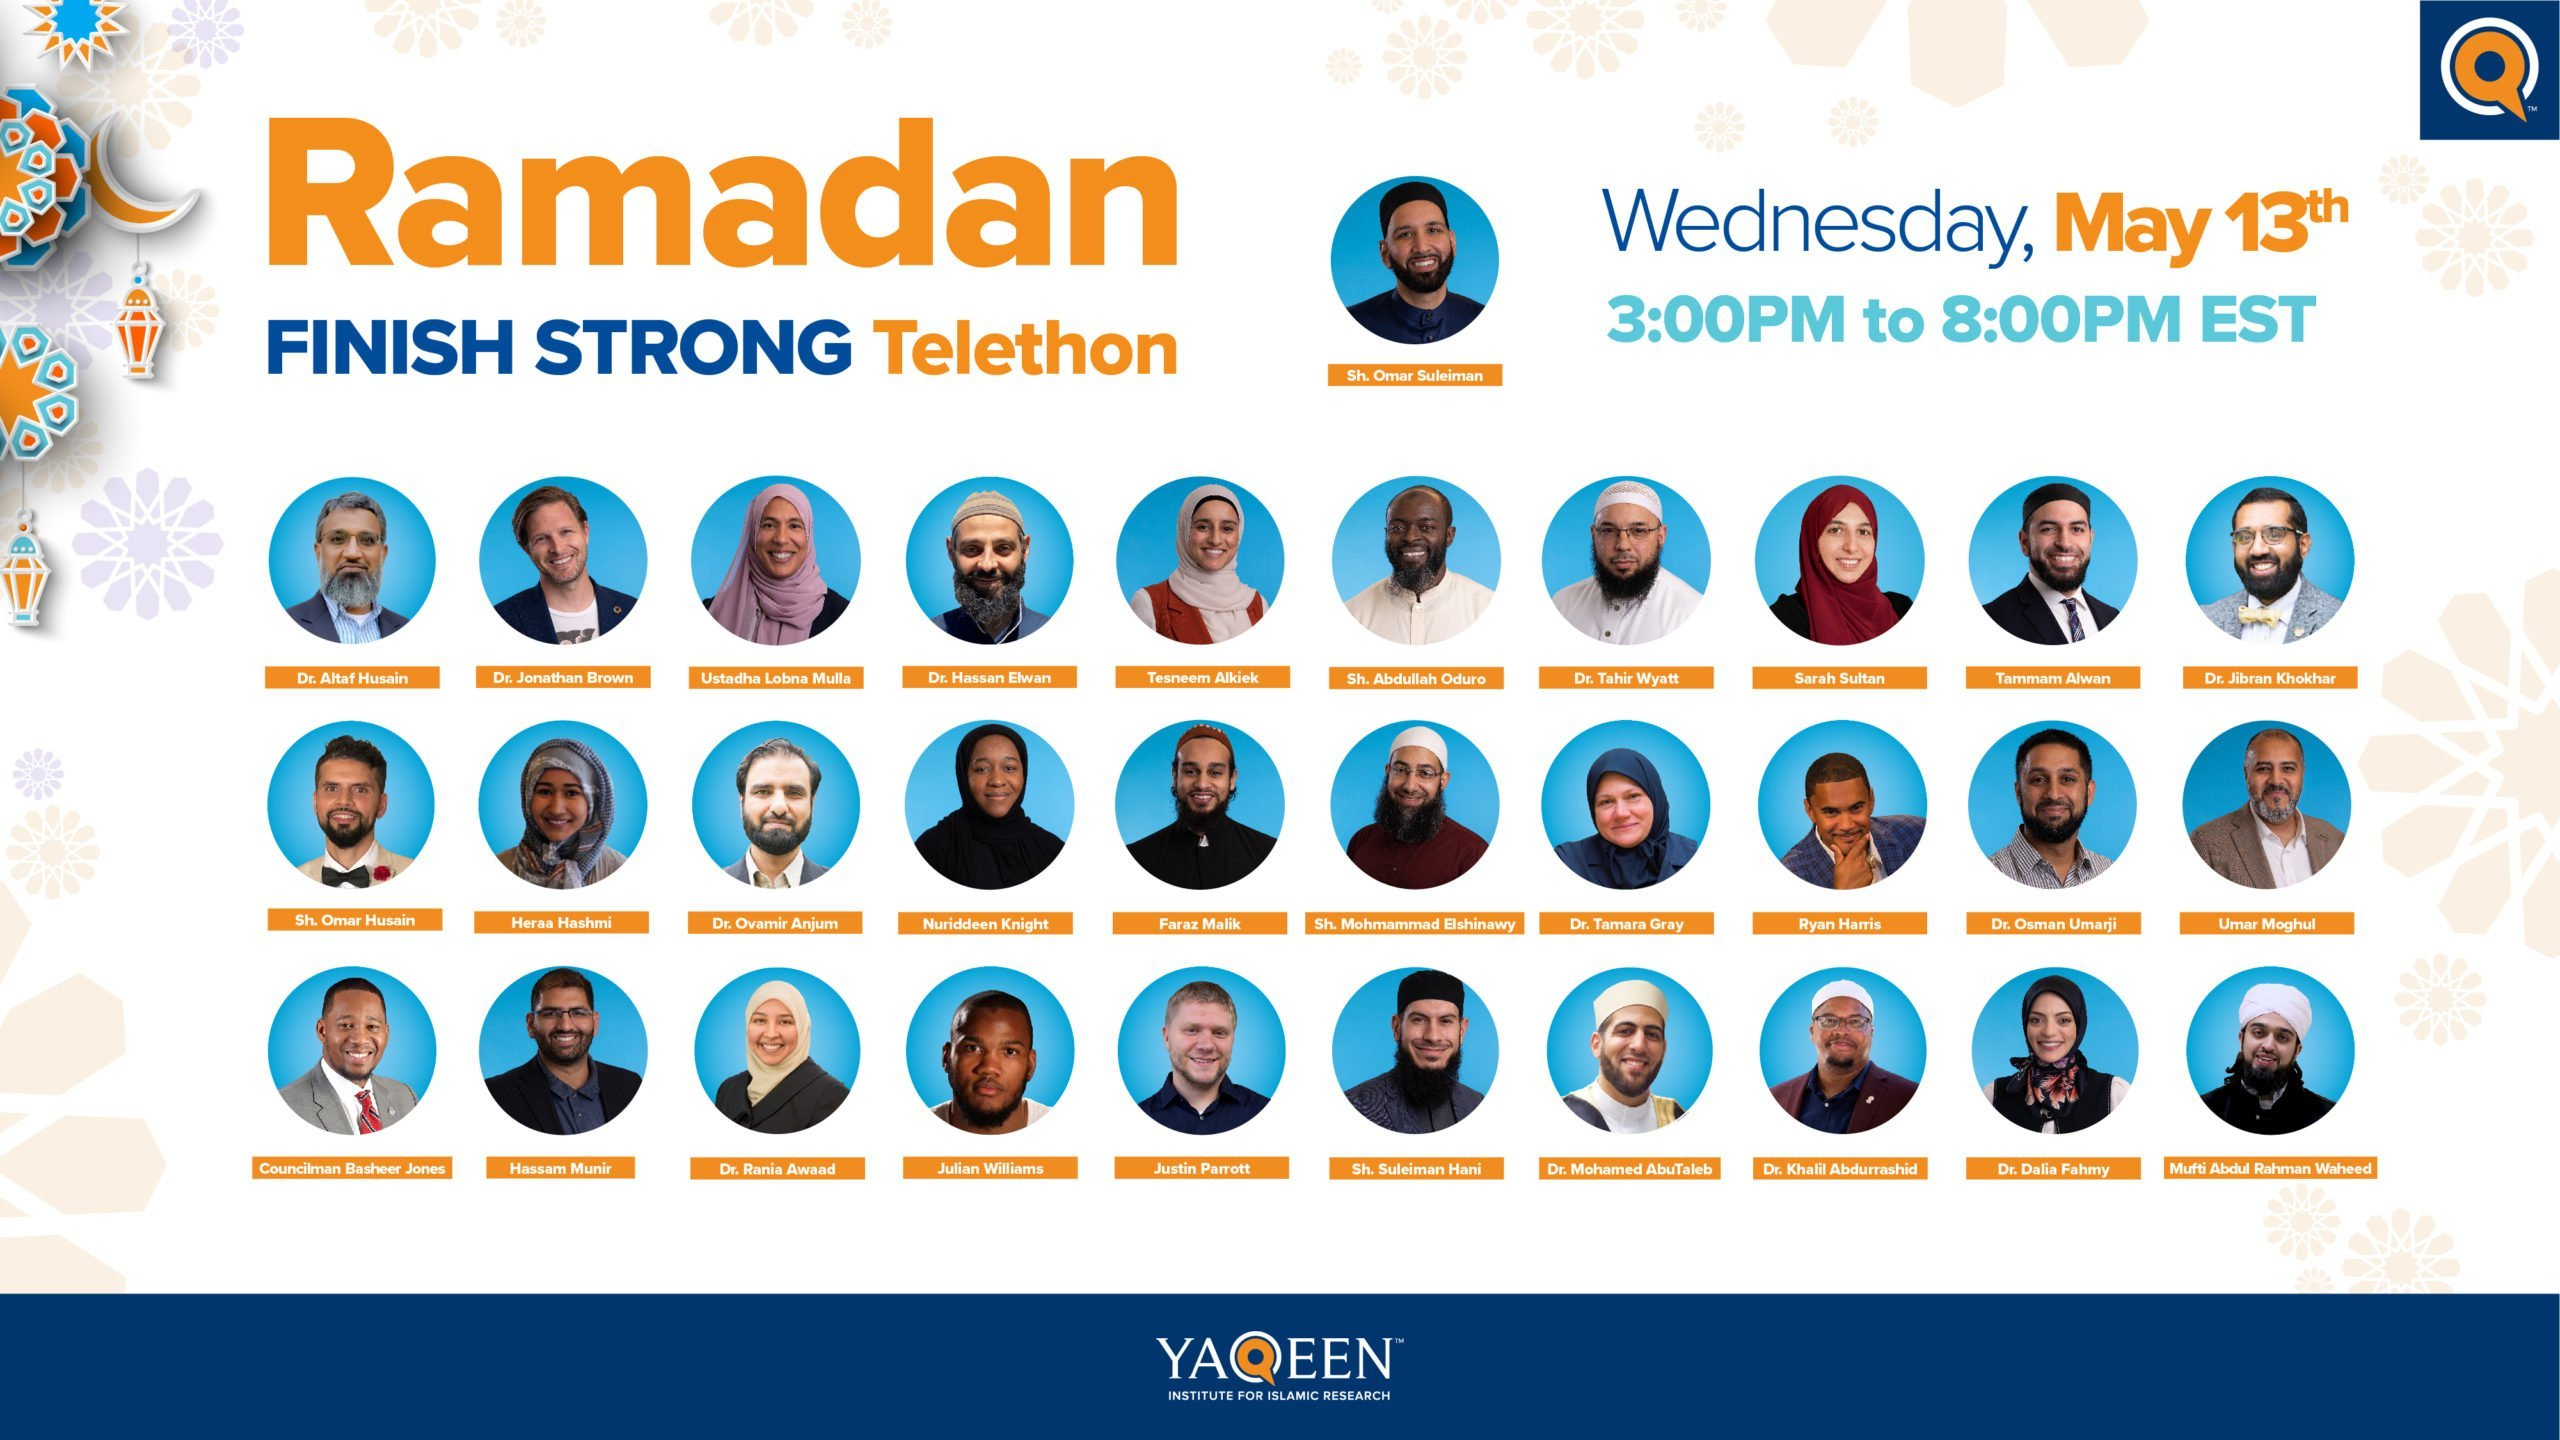 Live Now: Finish Ramadan Strong Telethon